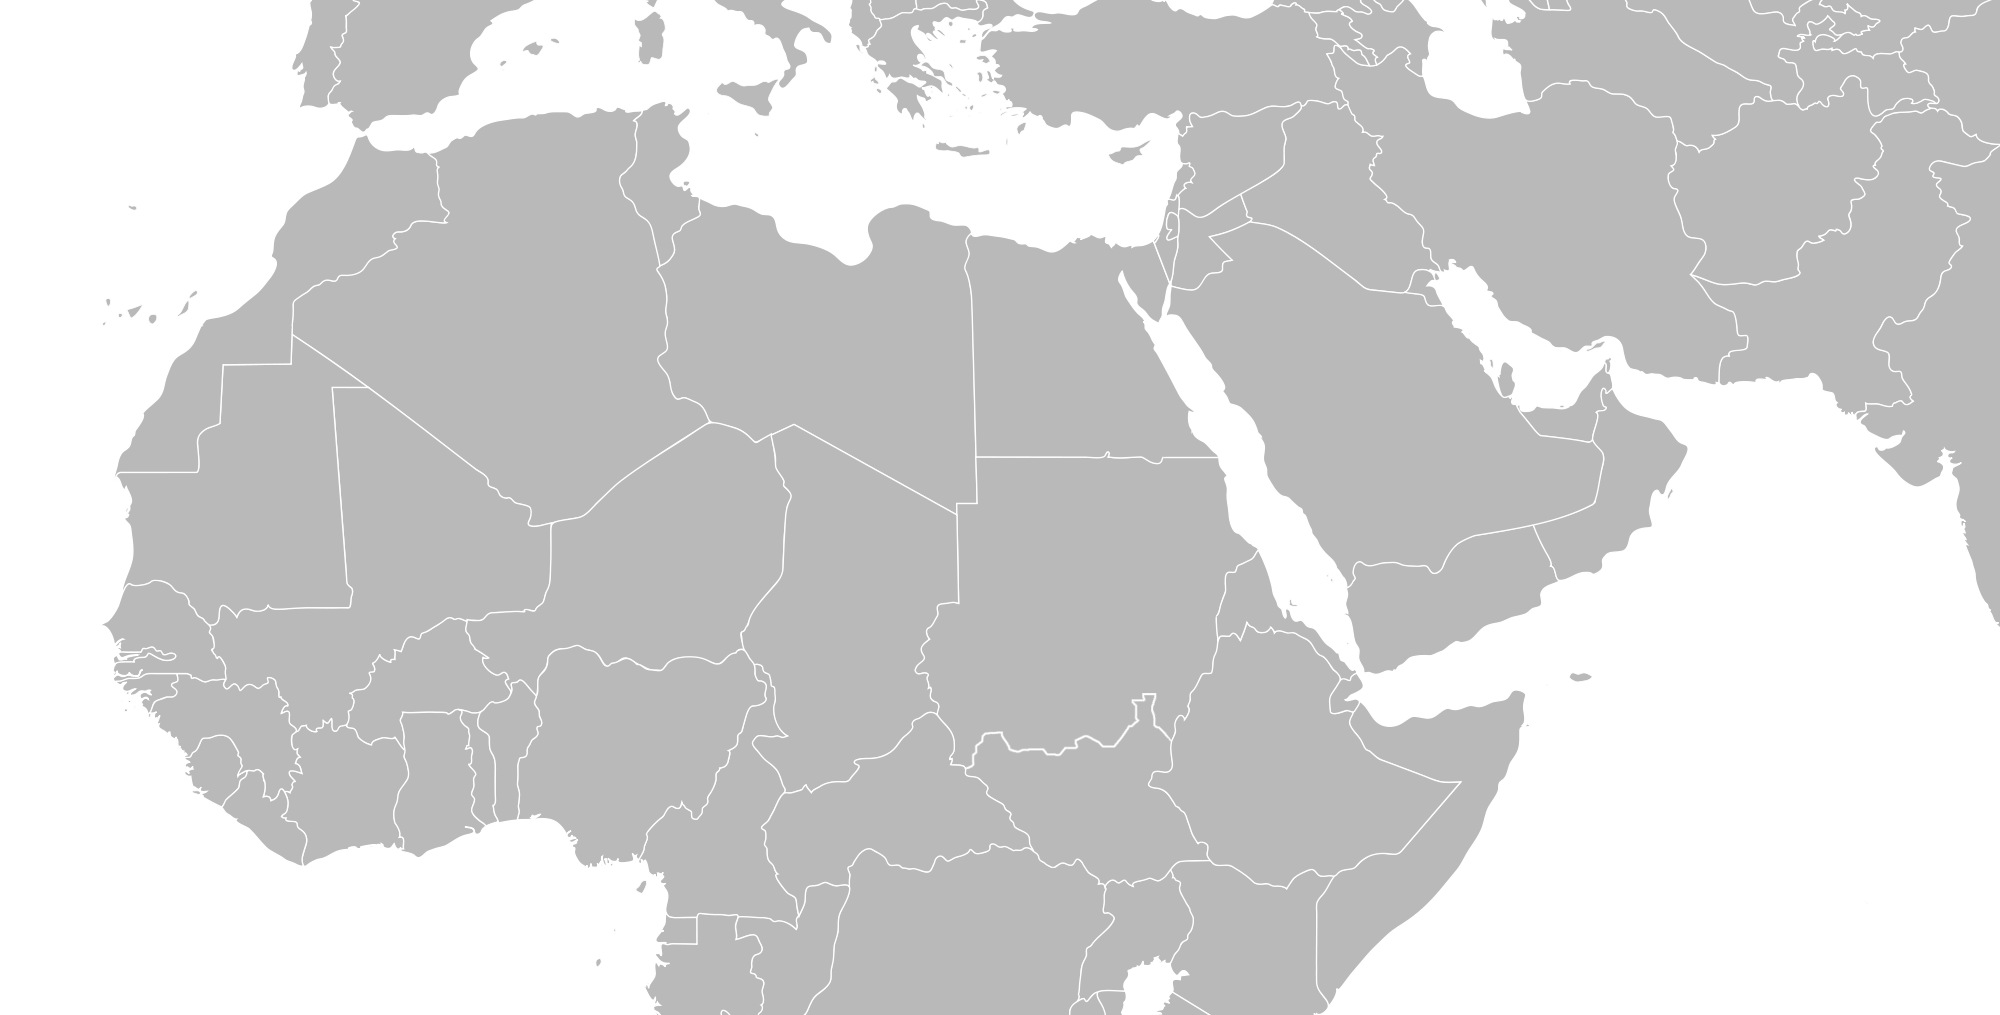 Maps vector mena. North africa central middle